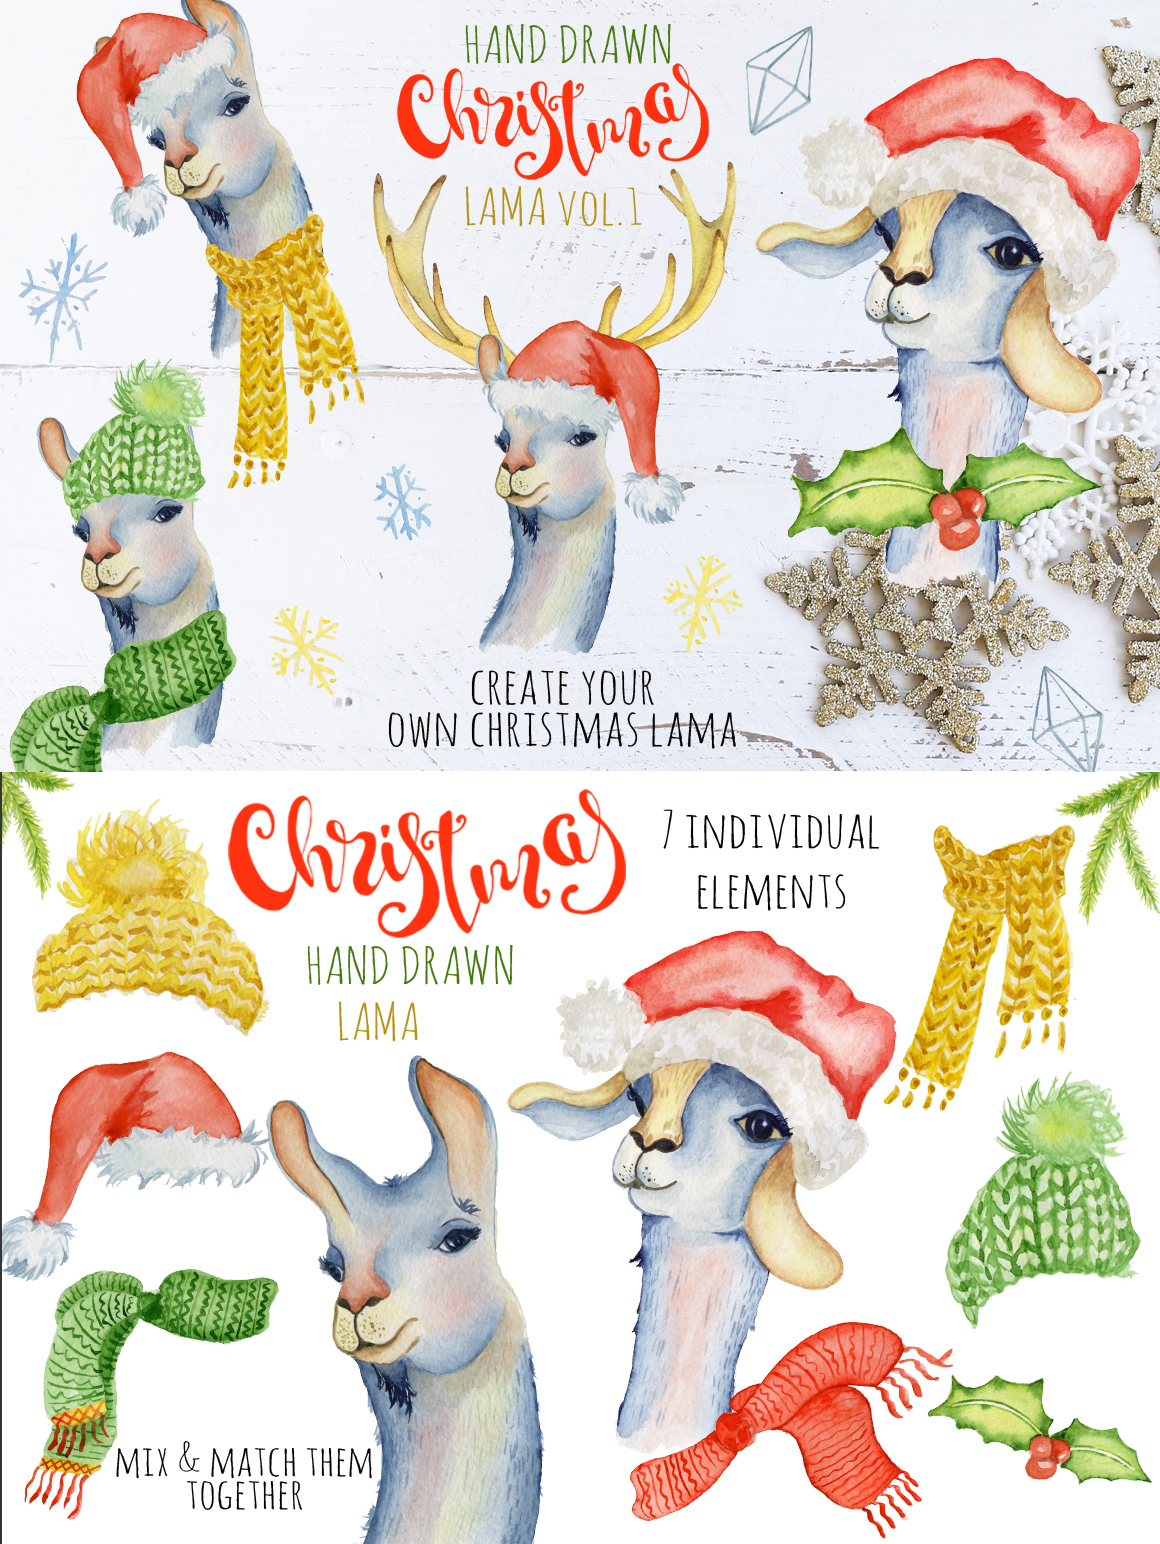 Magical Winter Clipart: 14 Christmas Watercolor Clipart Bundles in 1 - $28 - 9 Lama1